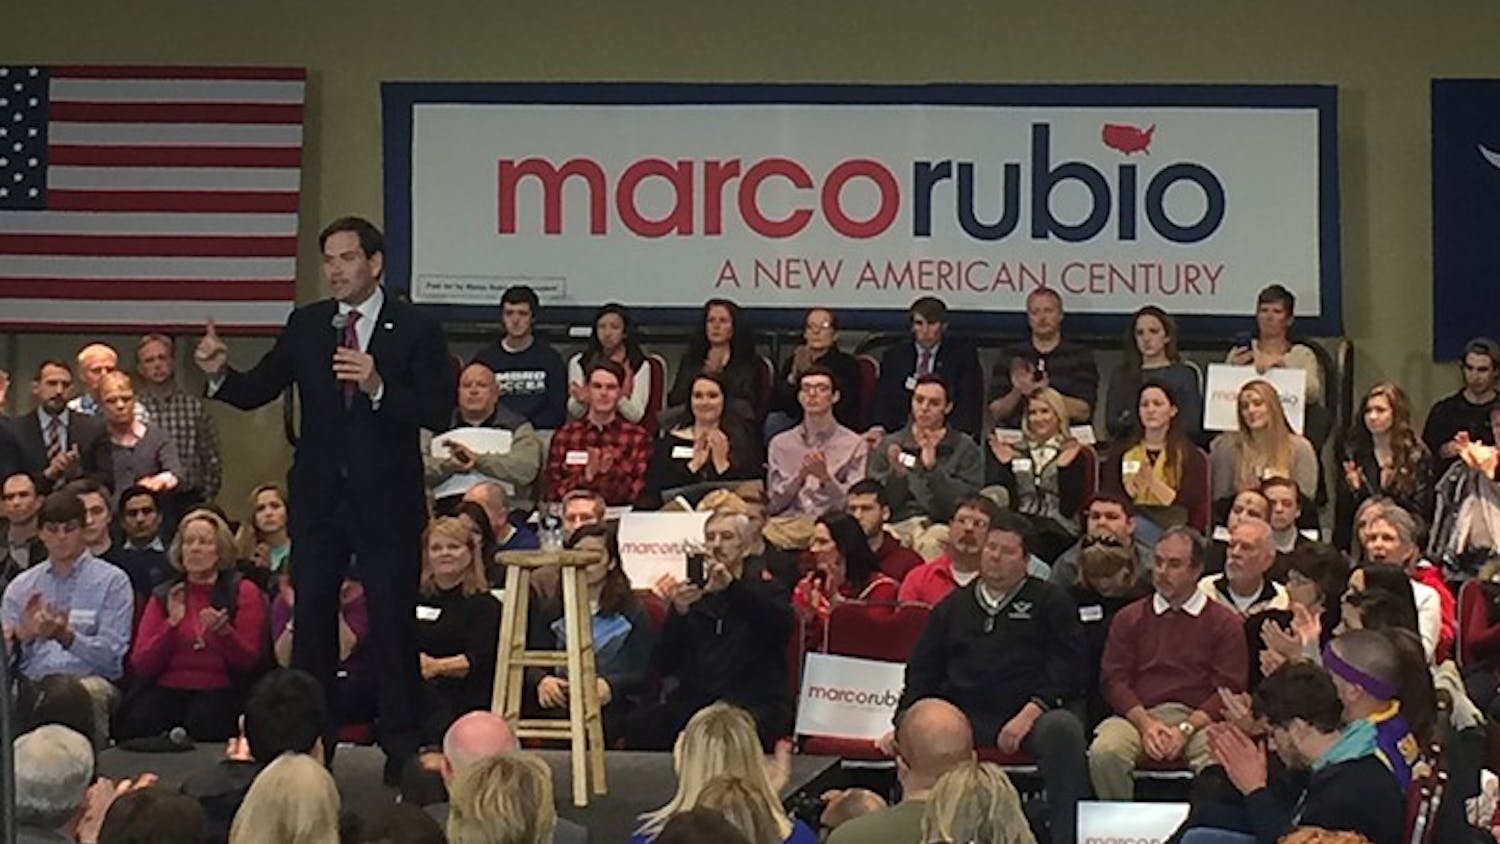 Marco Rubio spoke at a town hall in Columbia yesterday afternoon in preparation for the SouthCarolina primary.